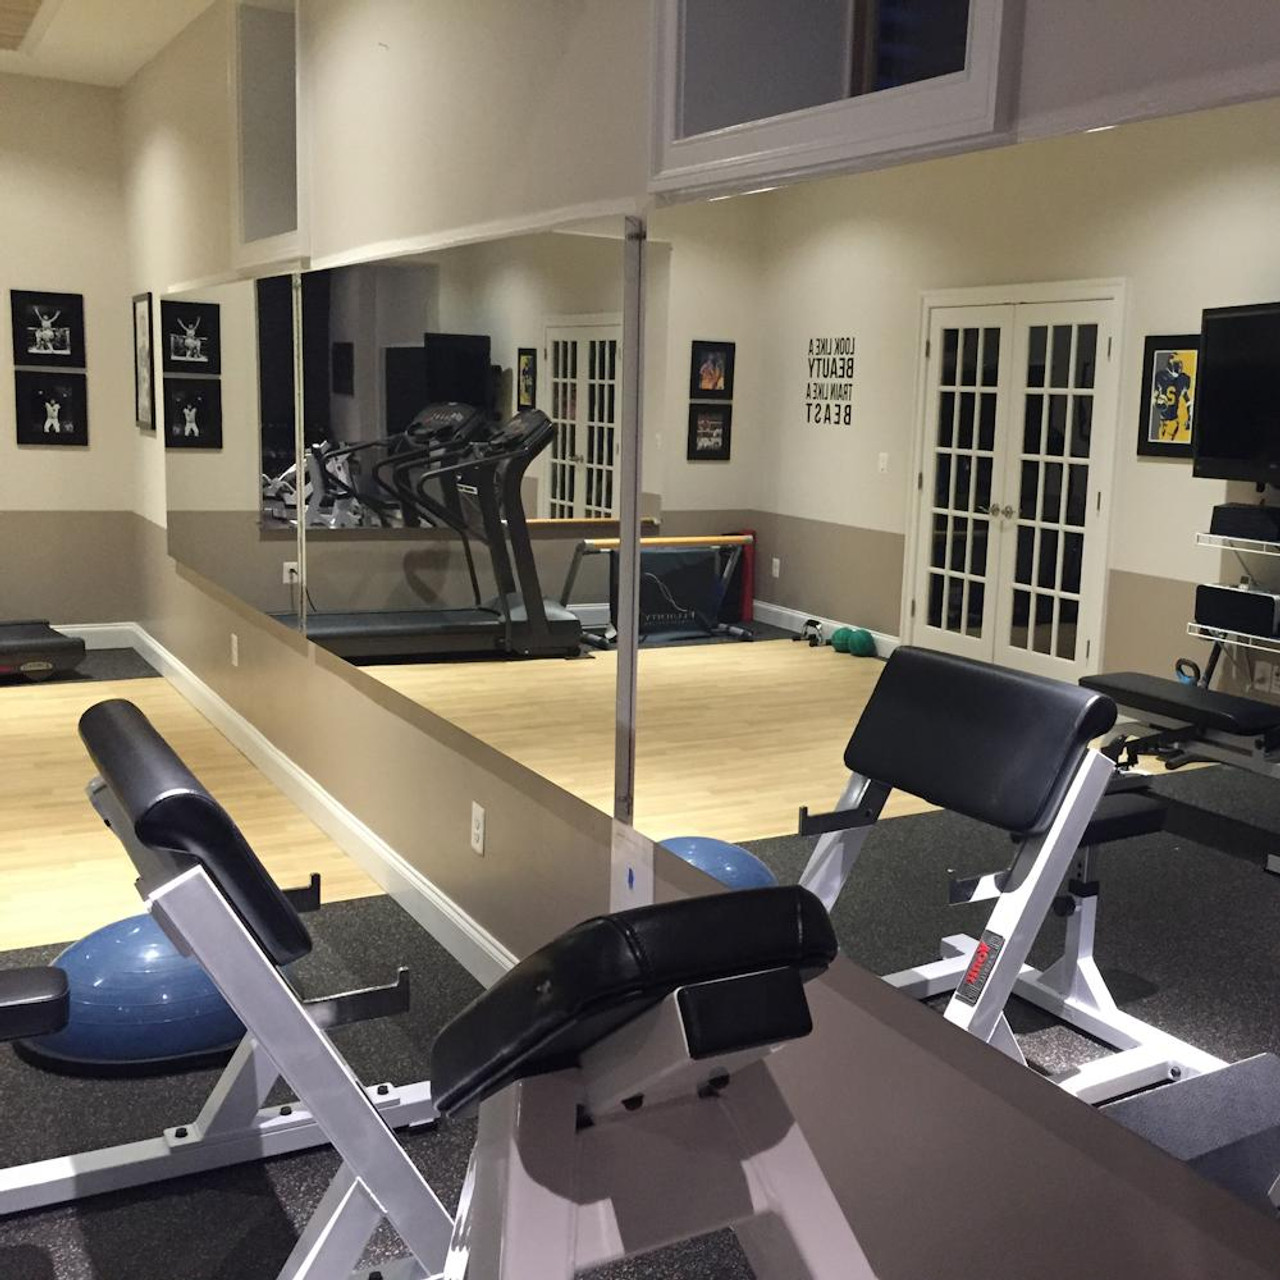 Swell Glassless Gym Wall Mirrors Download Free Architecture Designs Rallybritishbridgeorg